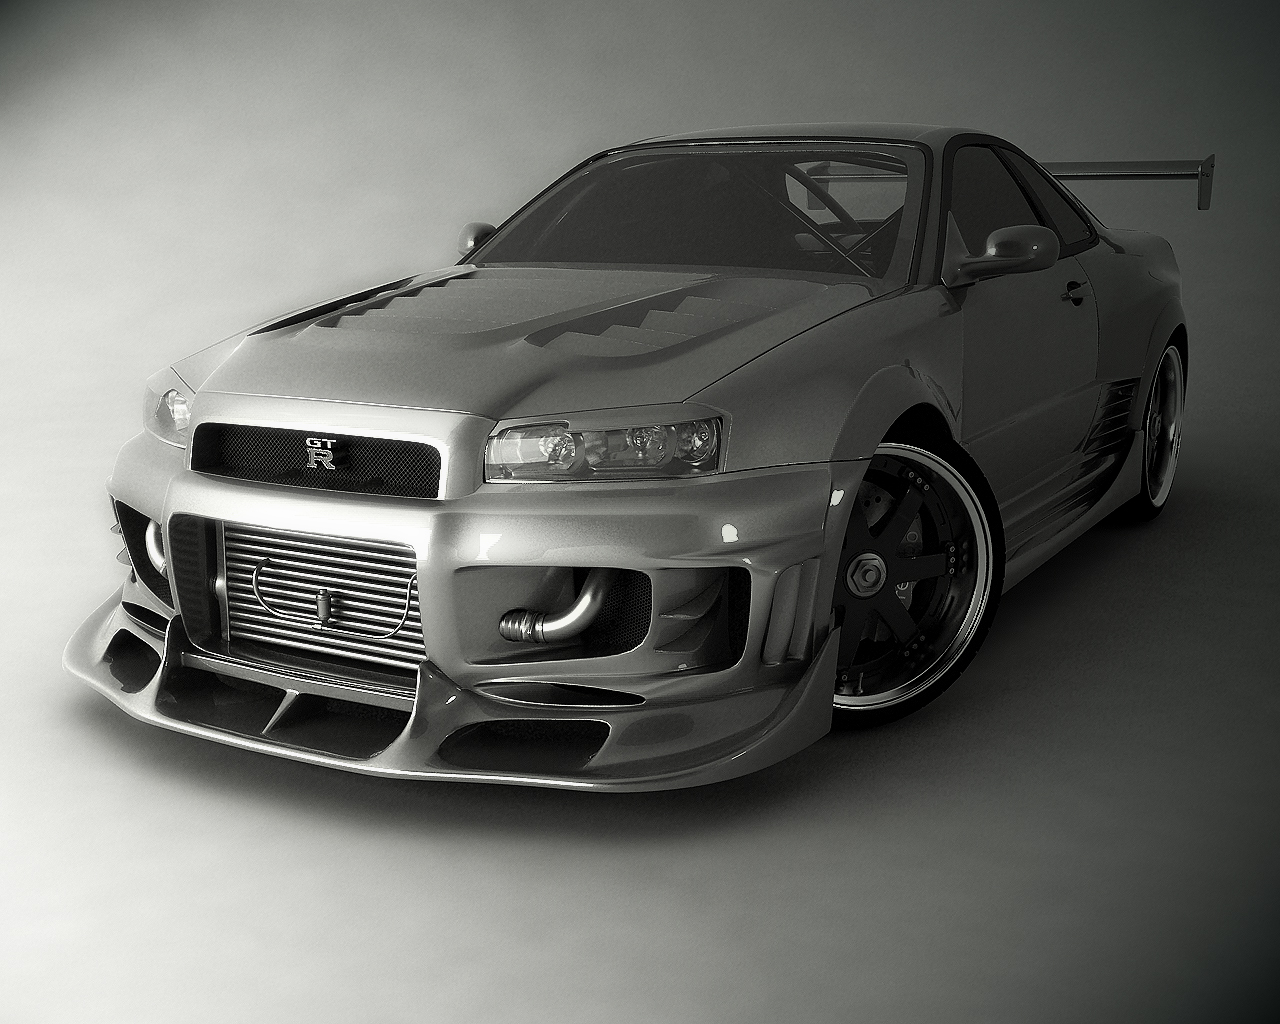 Nissan Skyline GTR Best Japanese Sport Cars